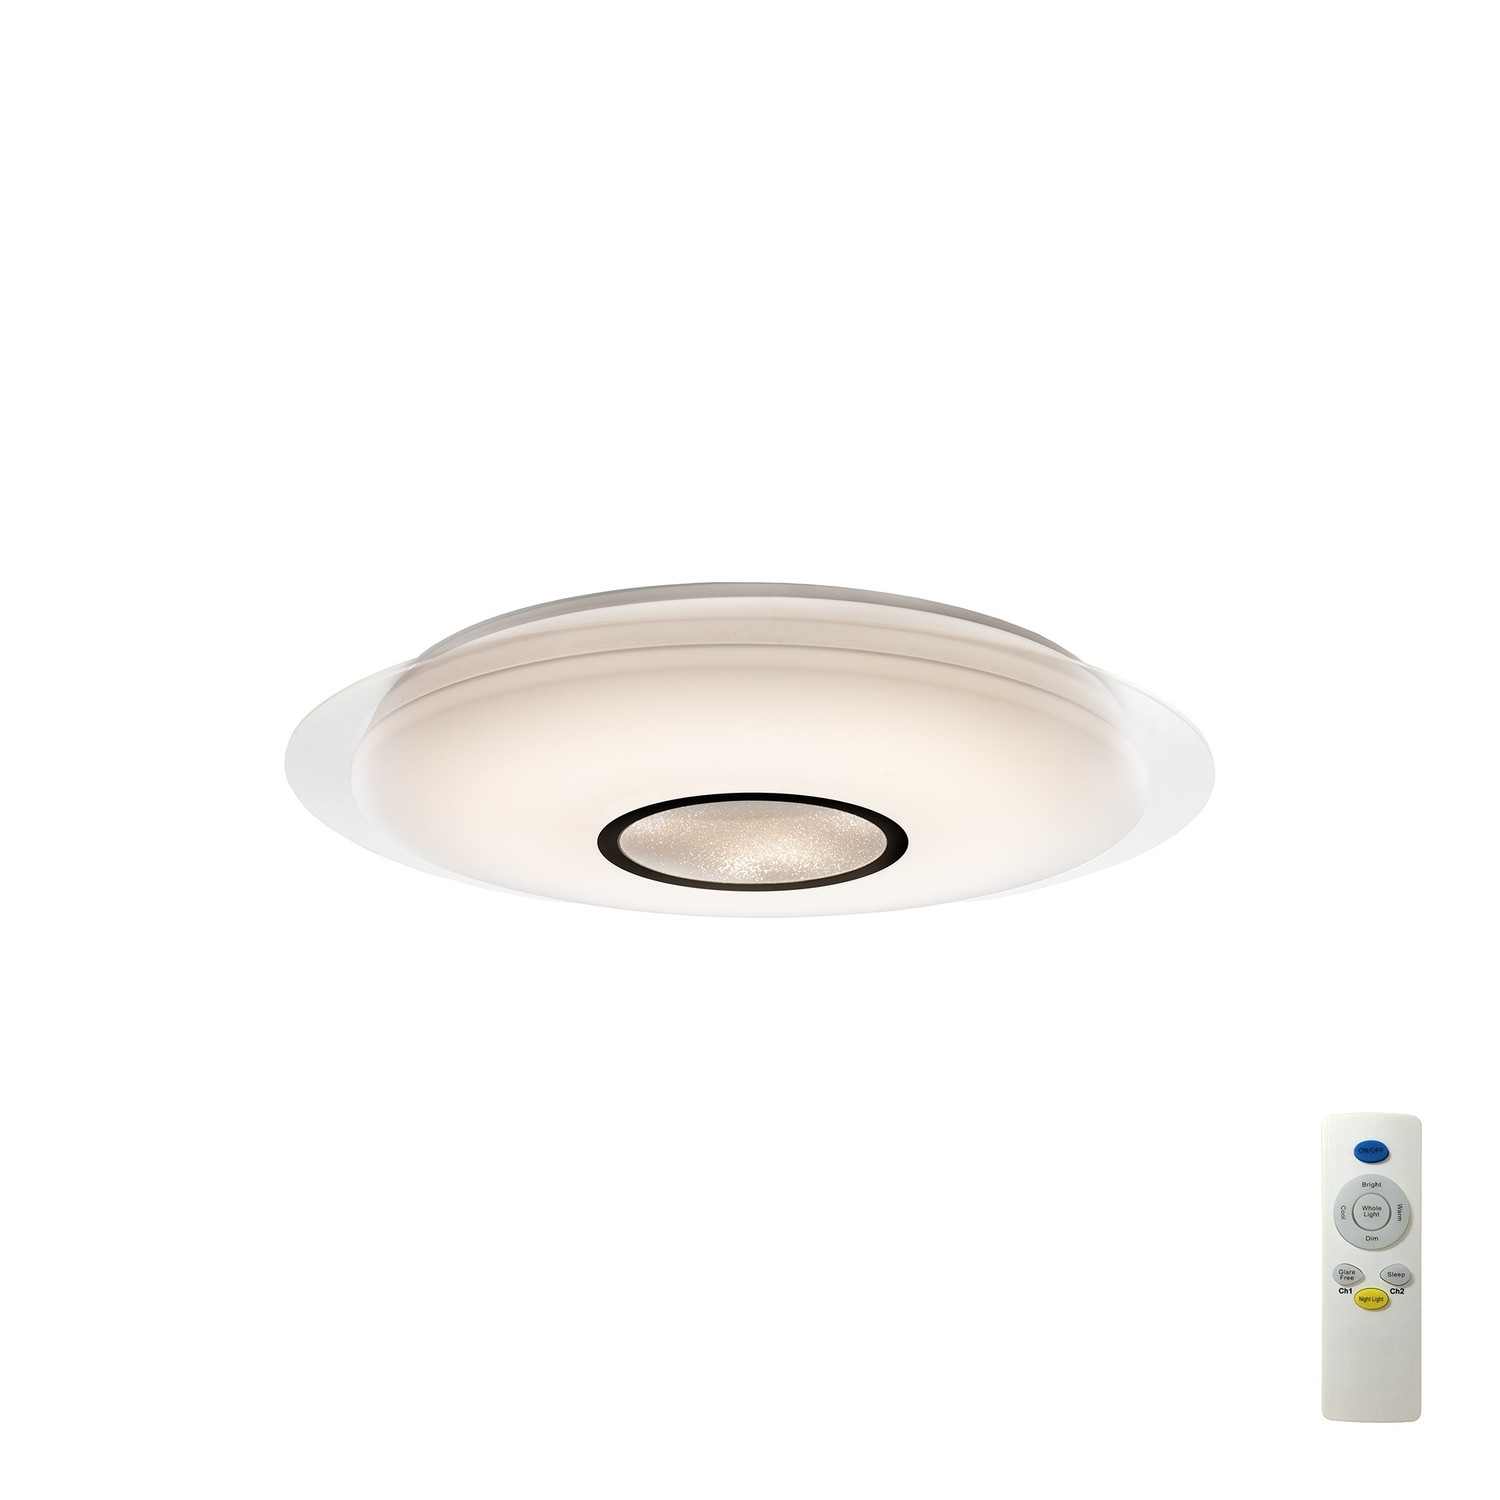 Mantra M3694 Maldivas 40W Tuneable White 3000K-6000K, 2800lm, Dimmable Flush Fitting With Remote Control